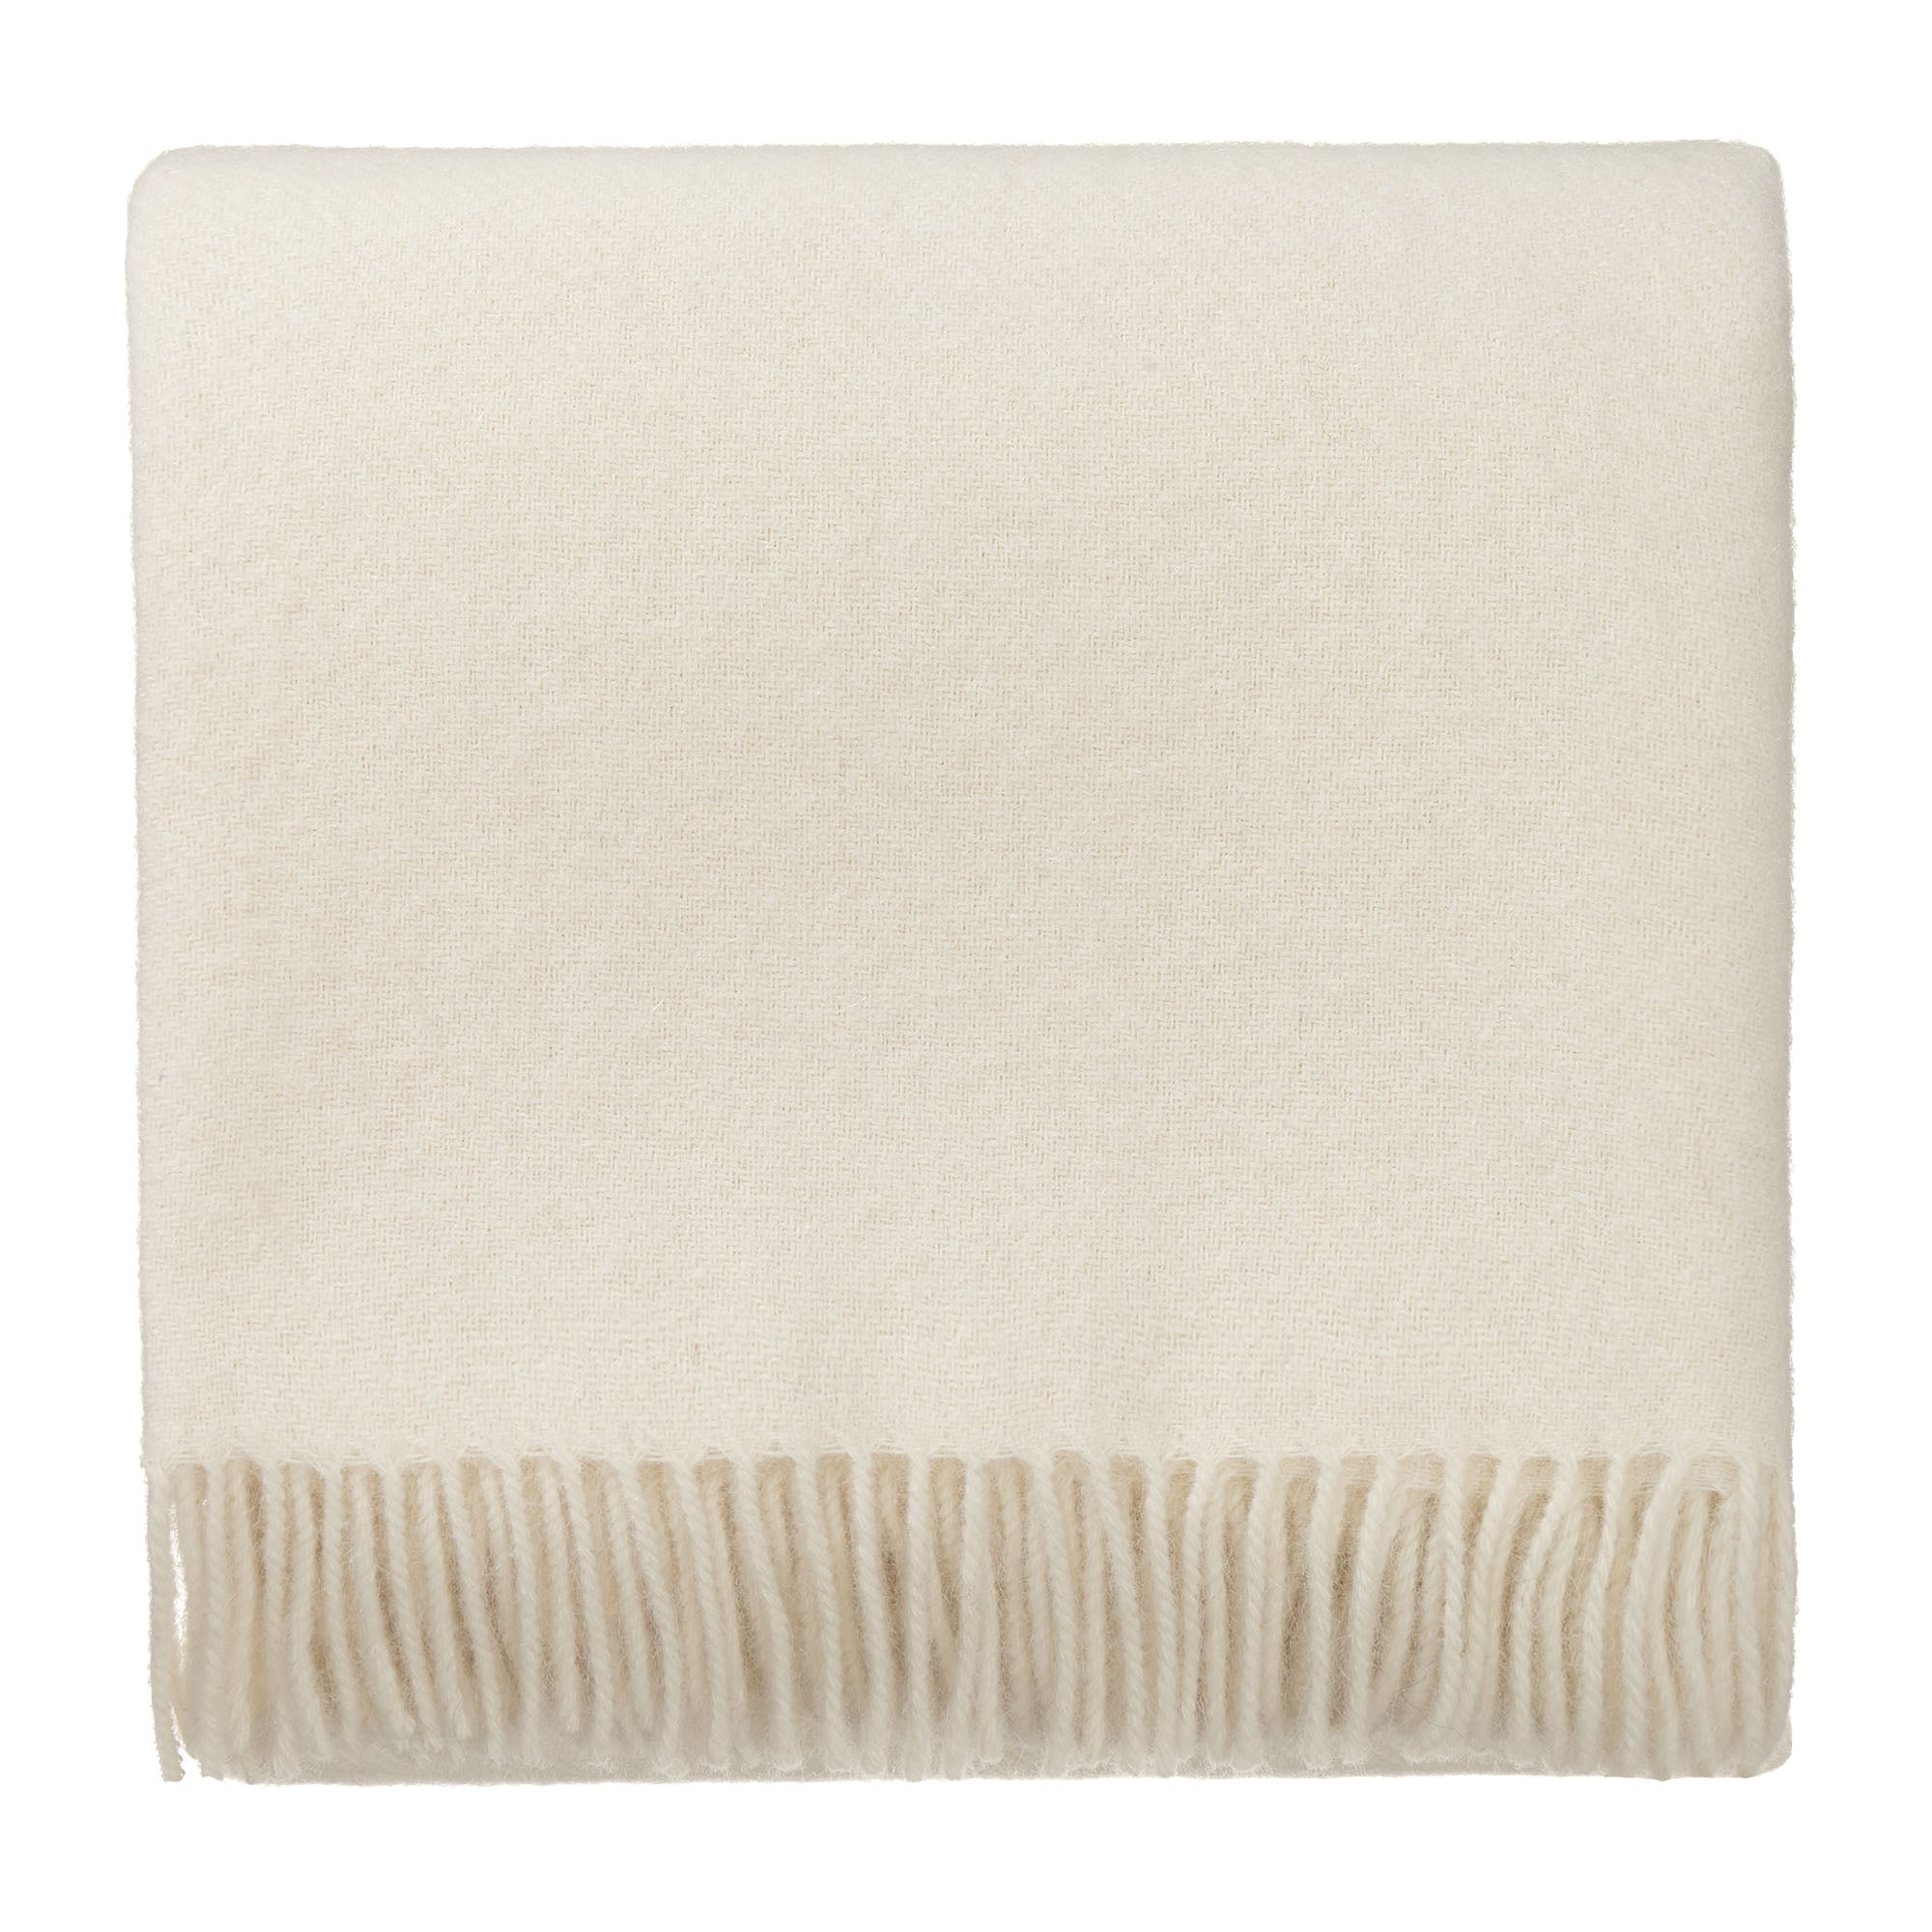 Tahua blanket, cream, 50% alpaca wool & 50% lambswool